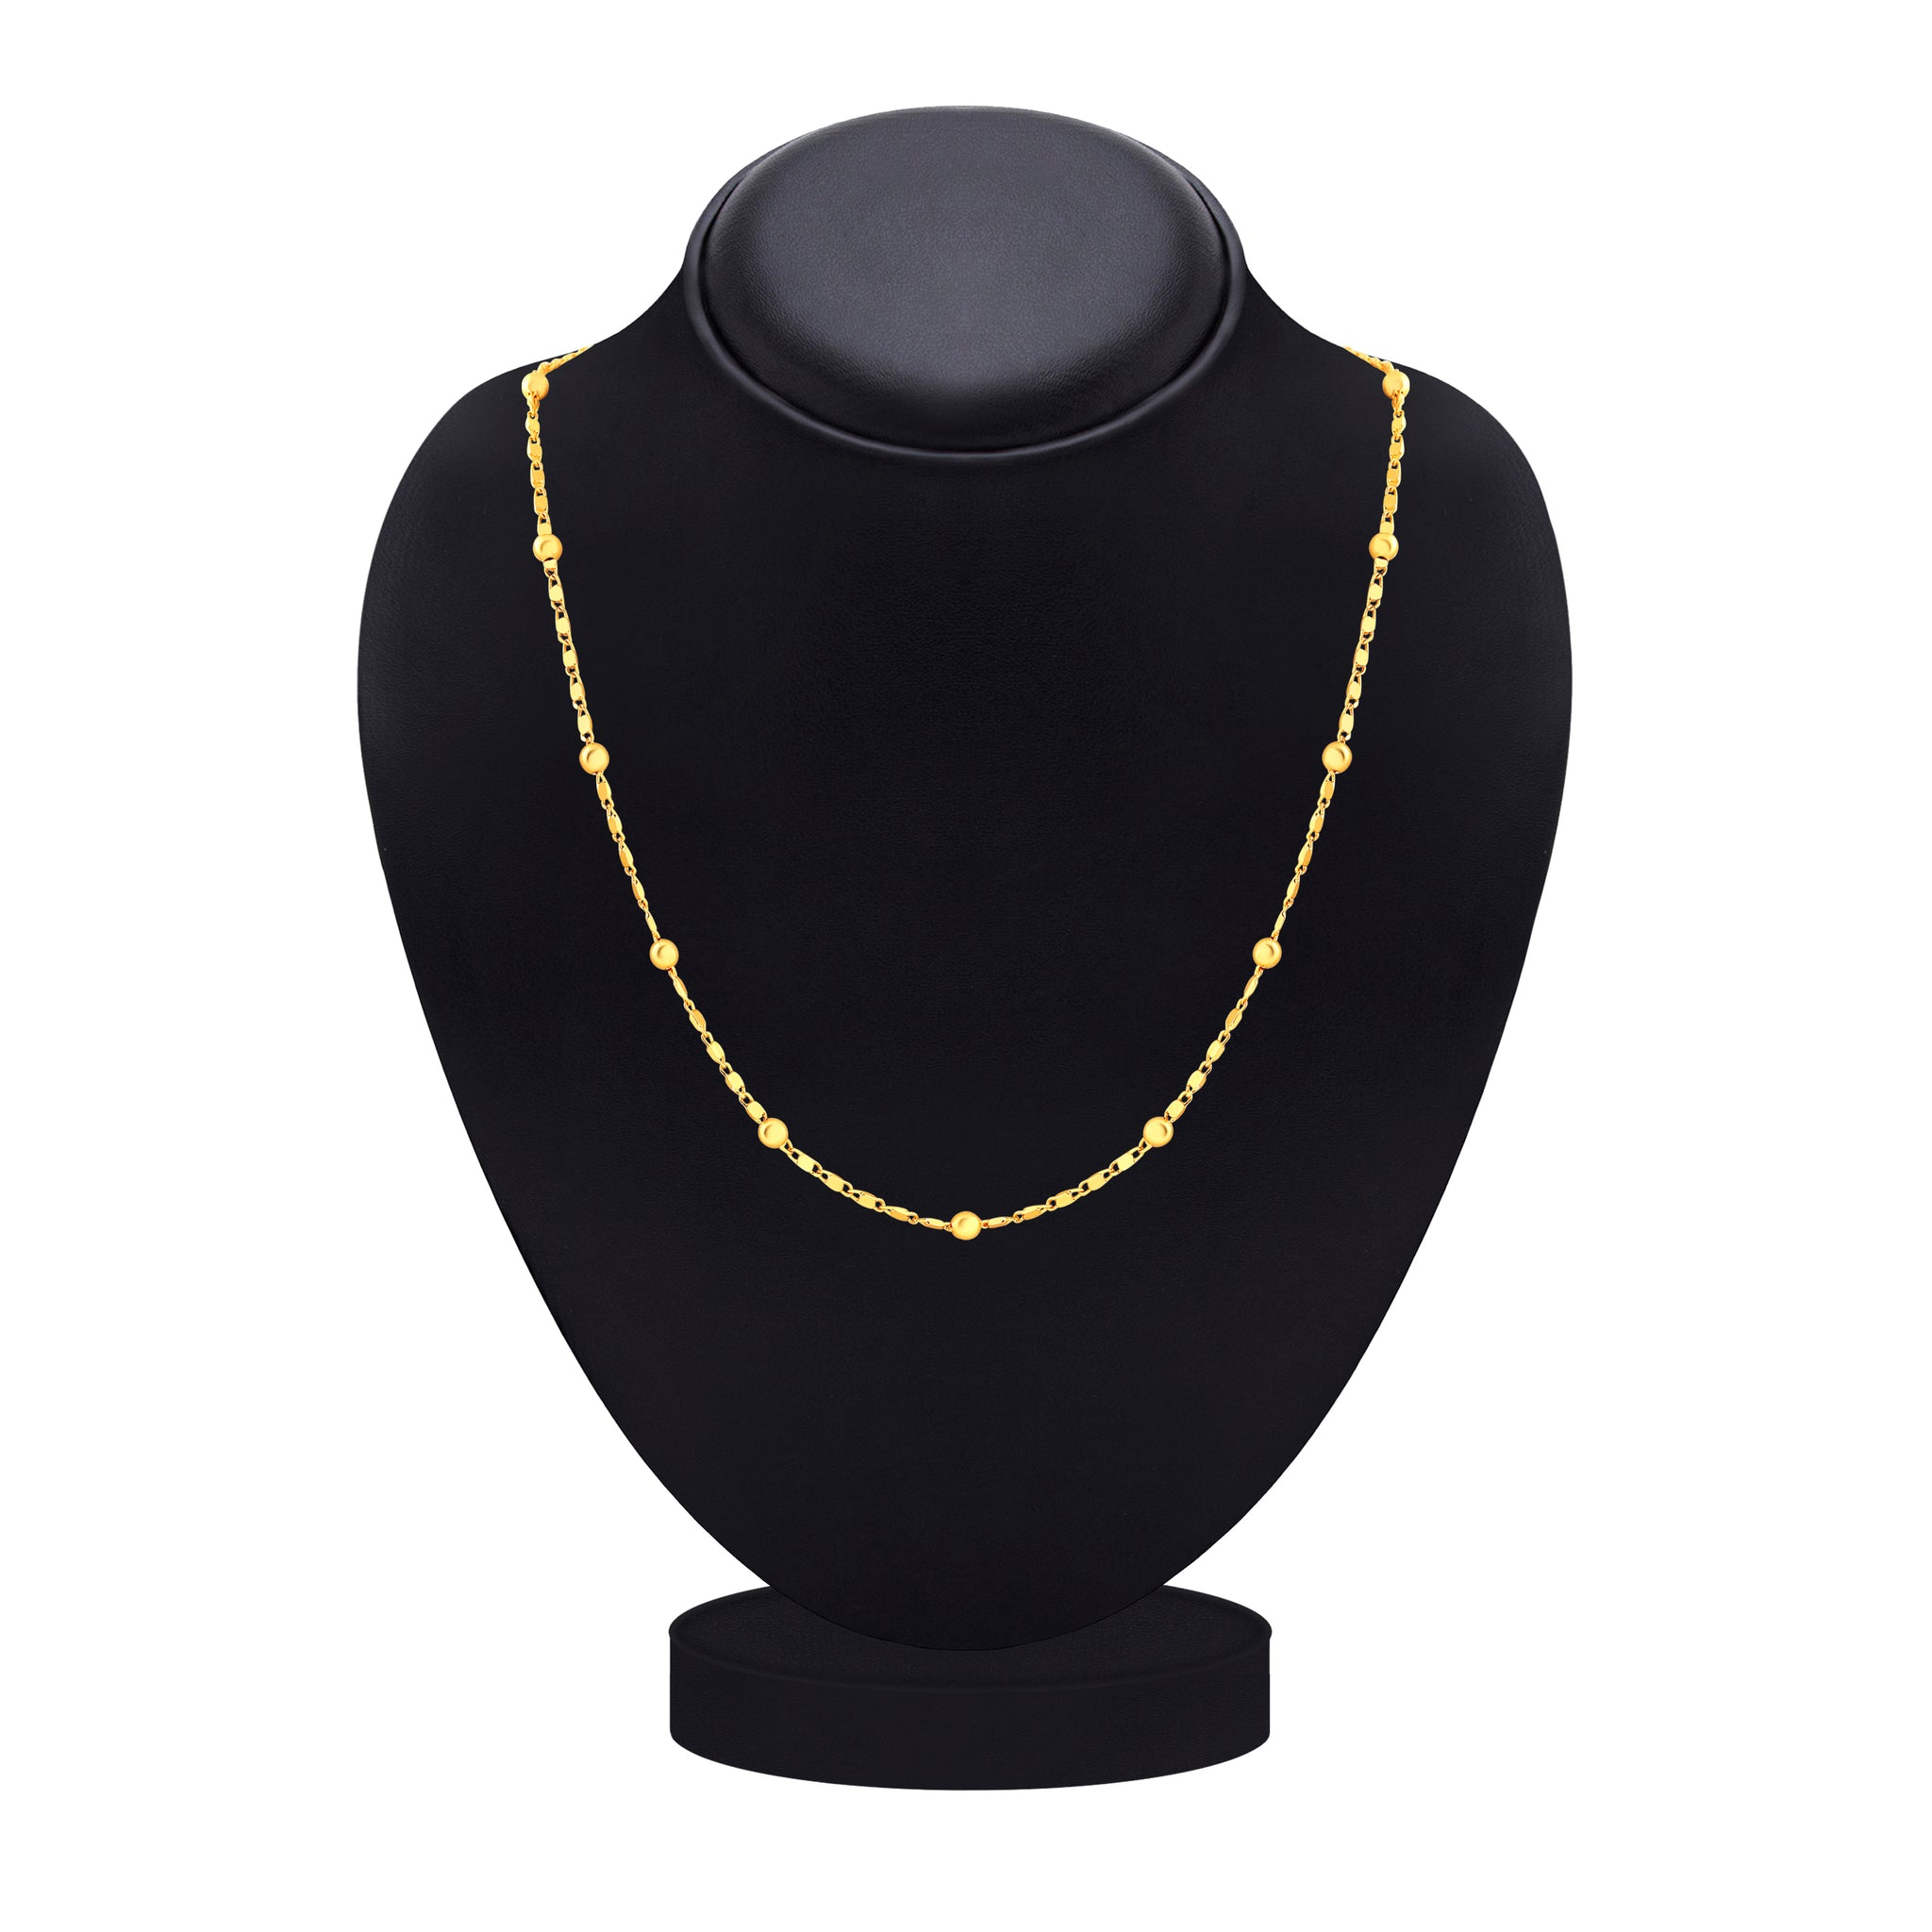 Asmitta Youthful Party Wear Gold Plated Chain For Women & Girls